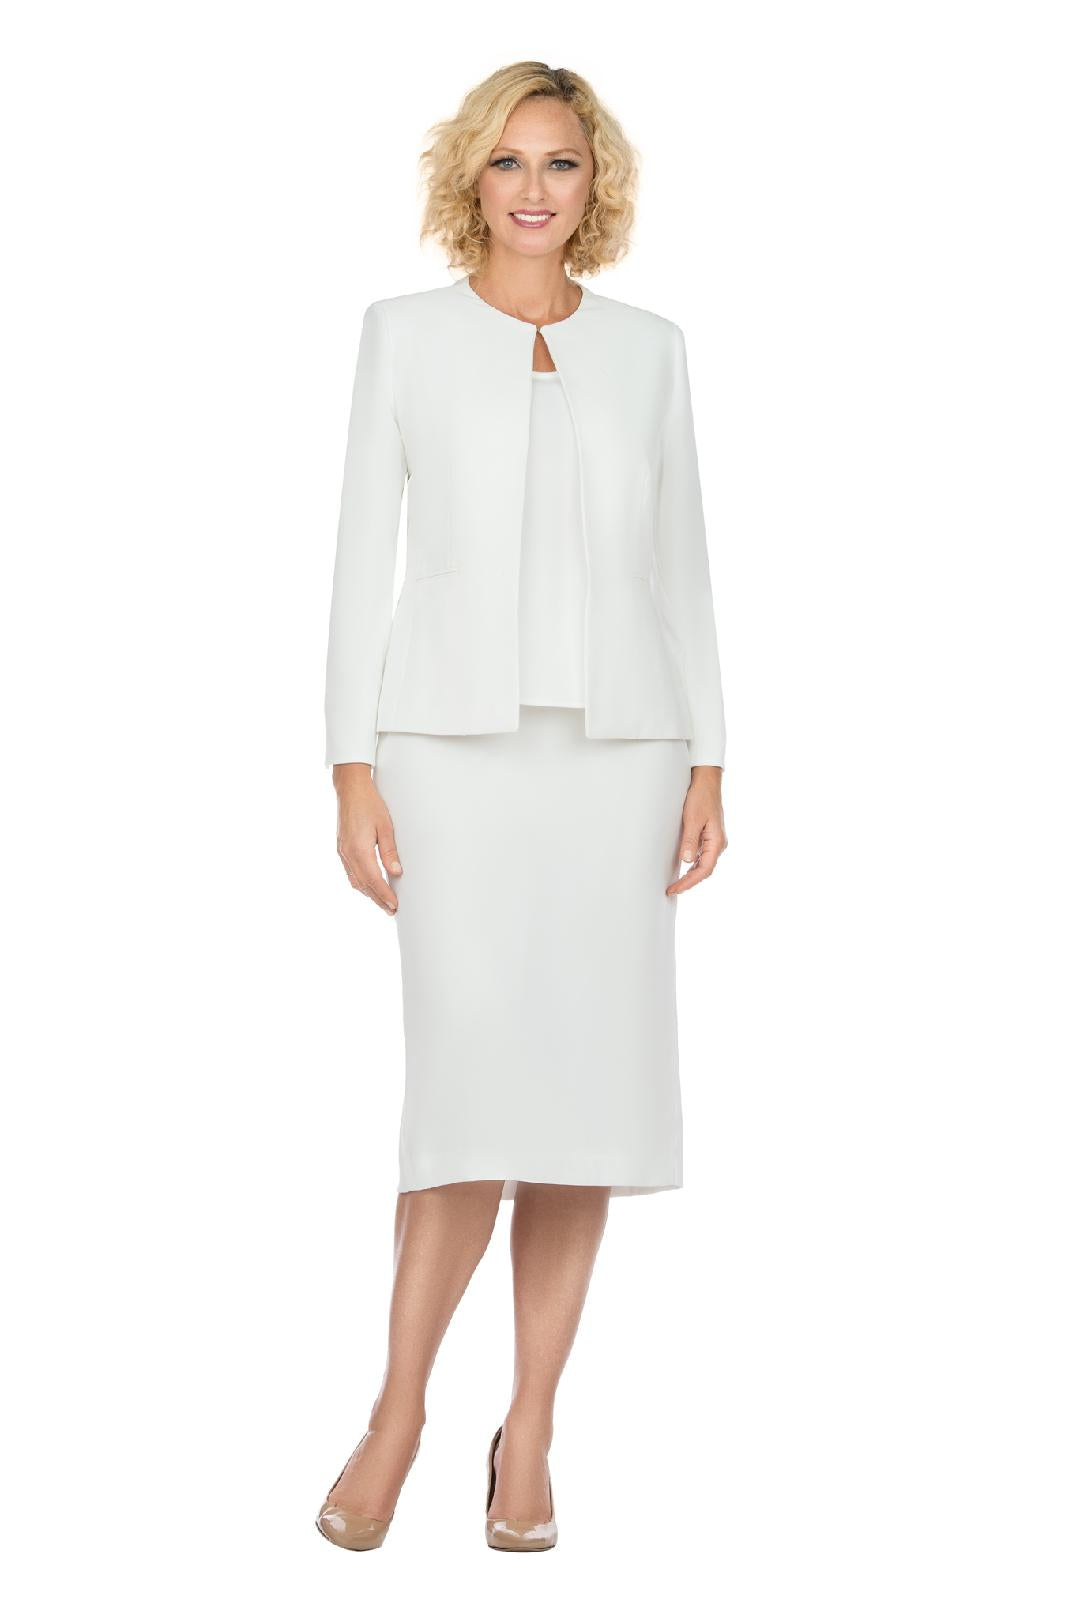 Giovanna Usher Suit S0721-White - Church Suits For Less